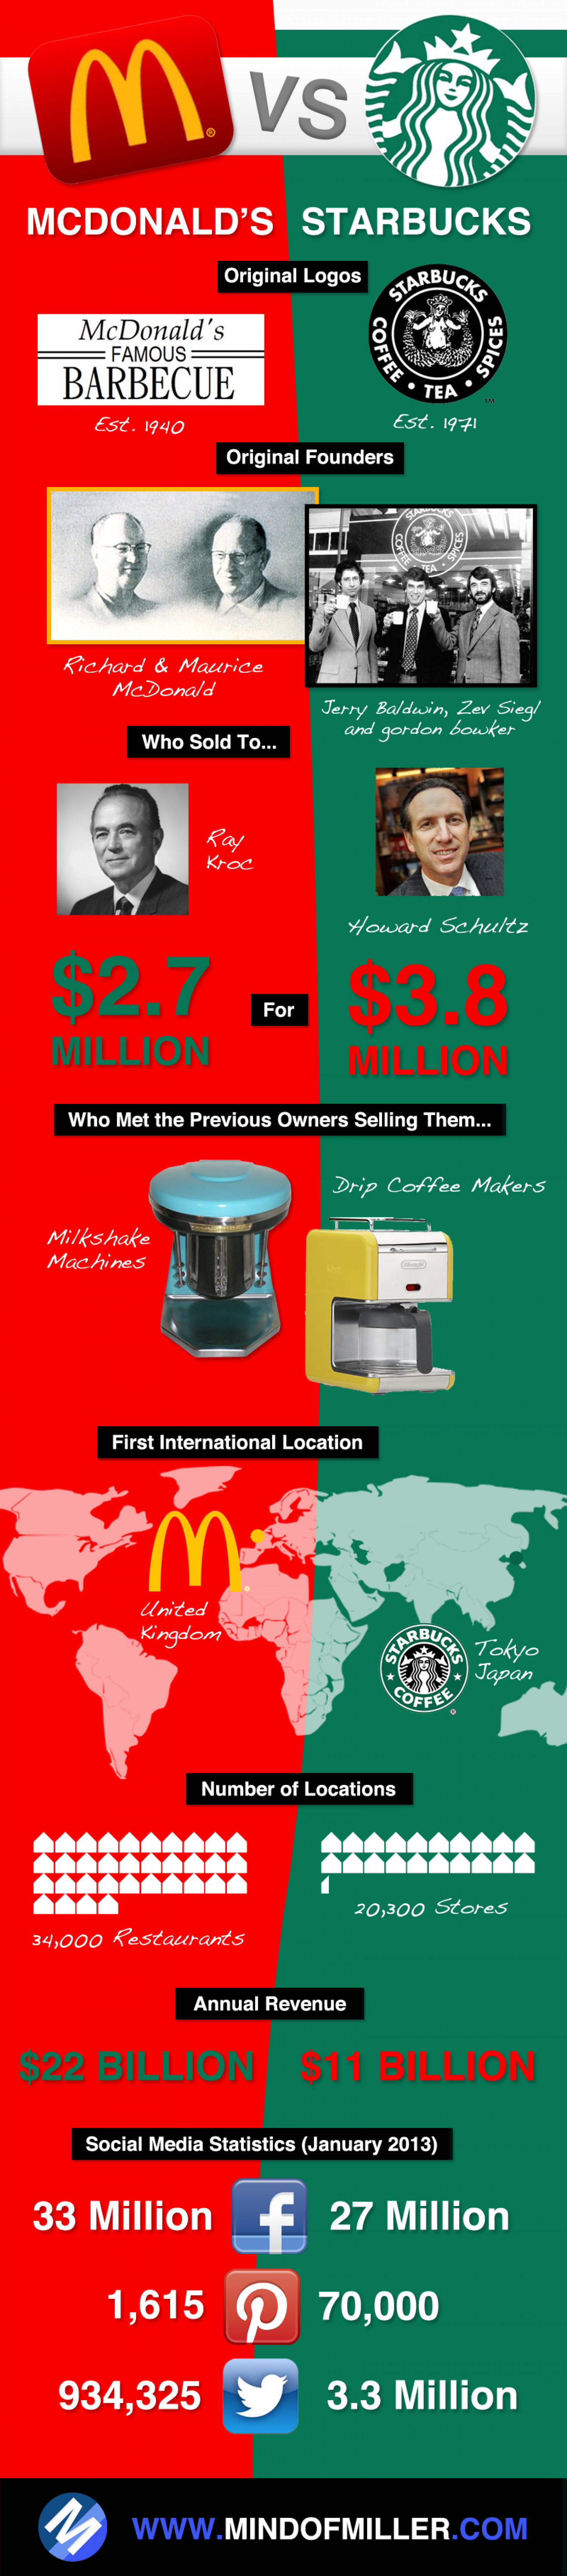 McDonalds VS Starbucks Infographic